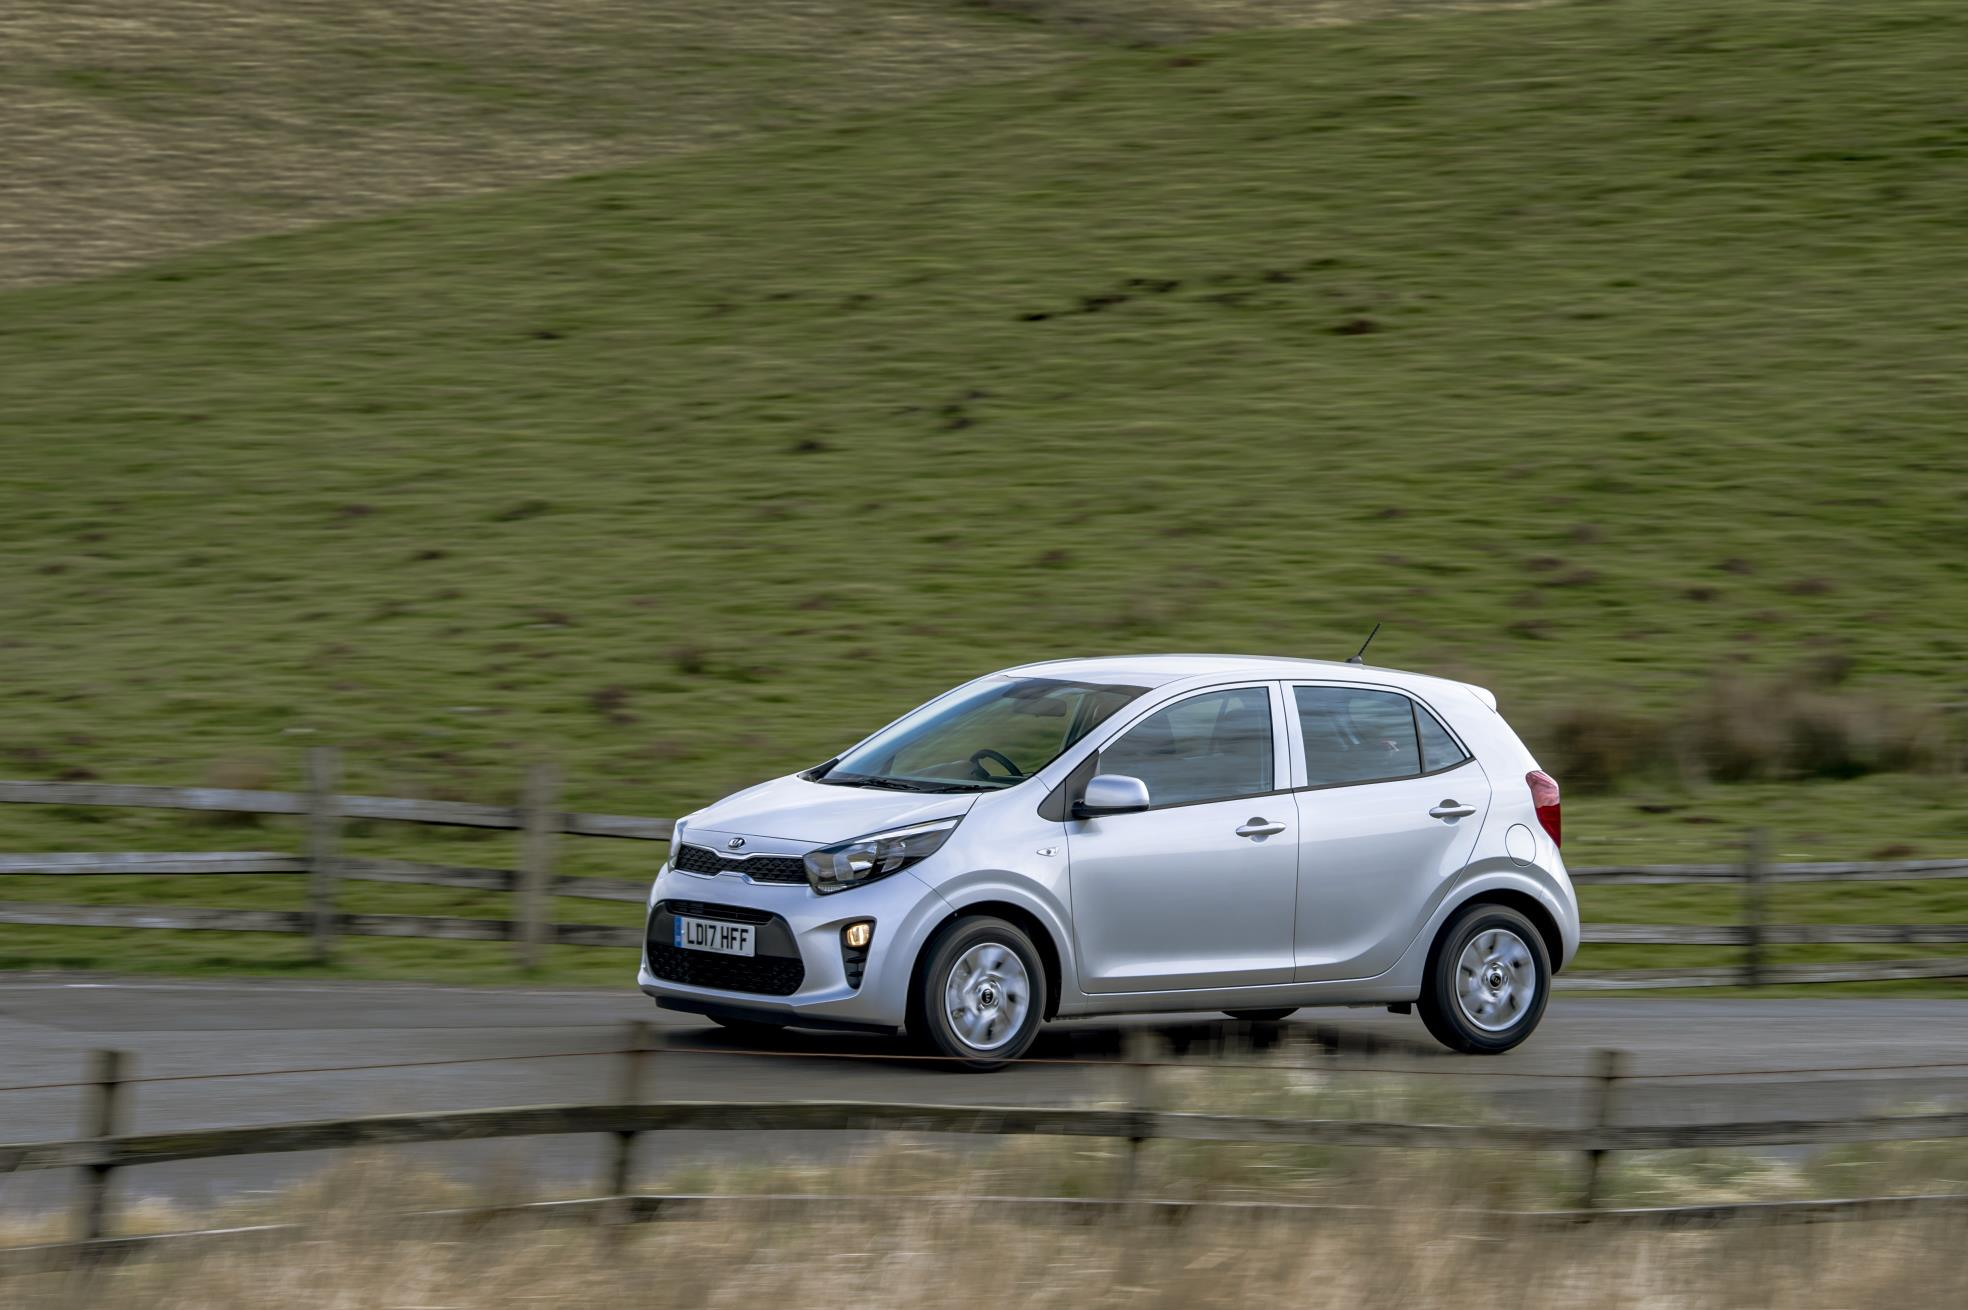 2017 kia picanto now available in the uk from gbp 9,450 - autoevolution